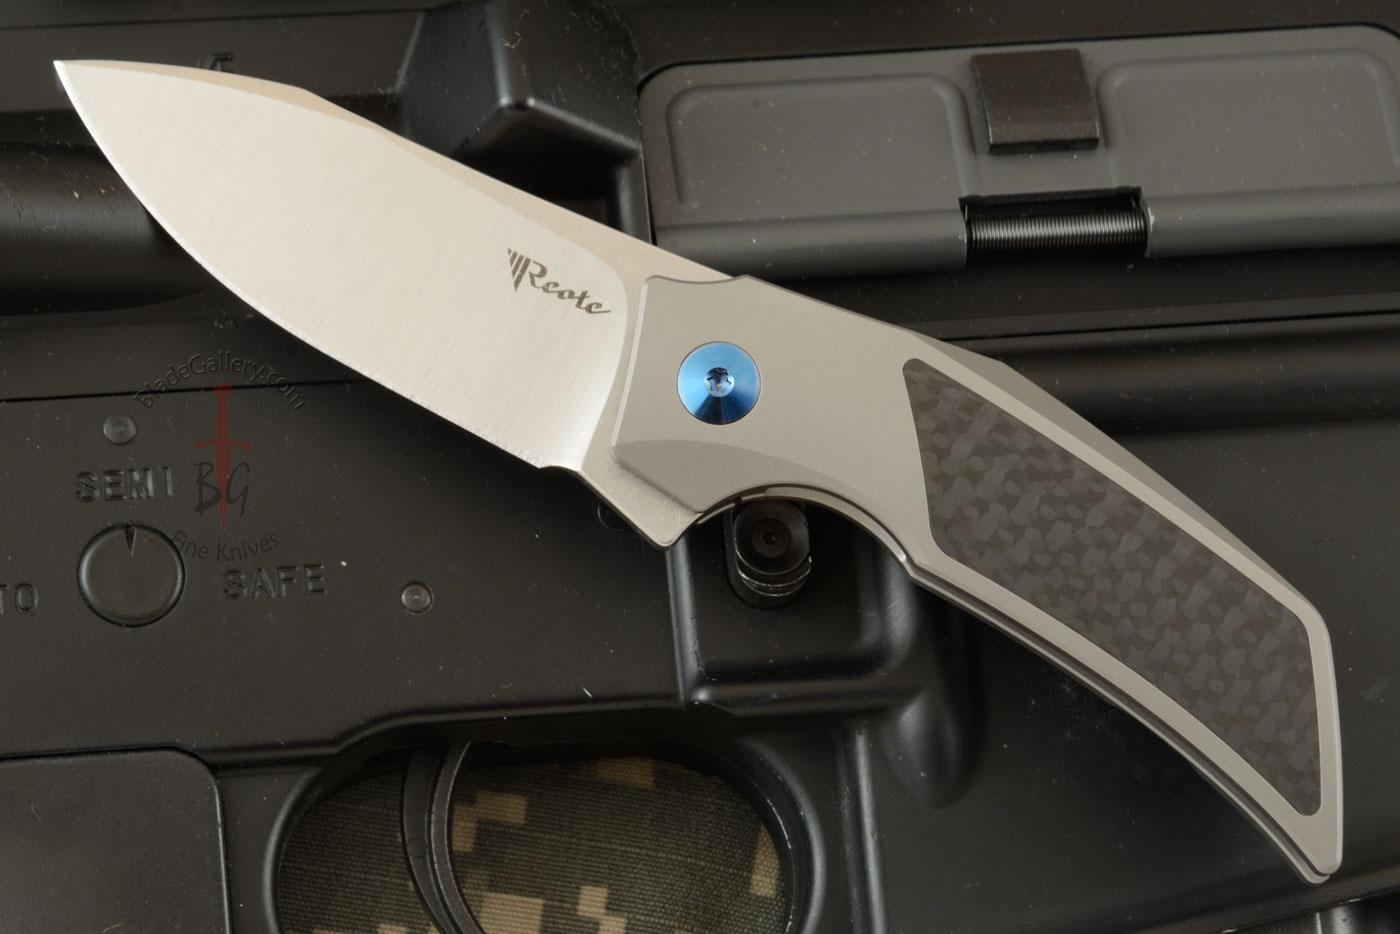 T2500 Frame Lock Flipper with Ti, Carbon Fiber, and M390